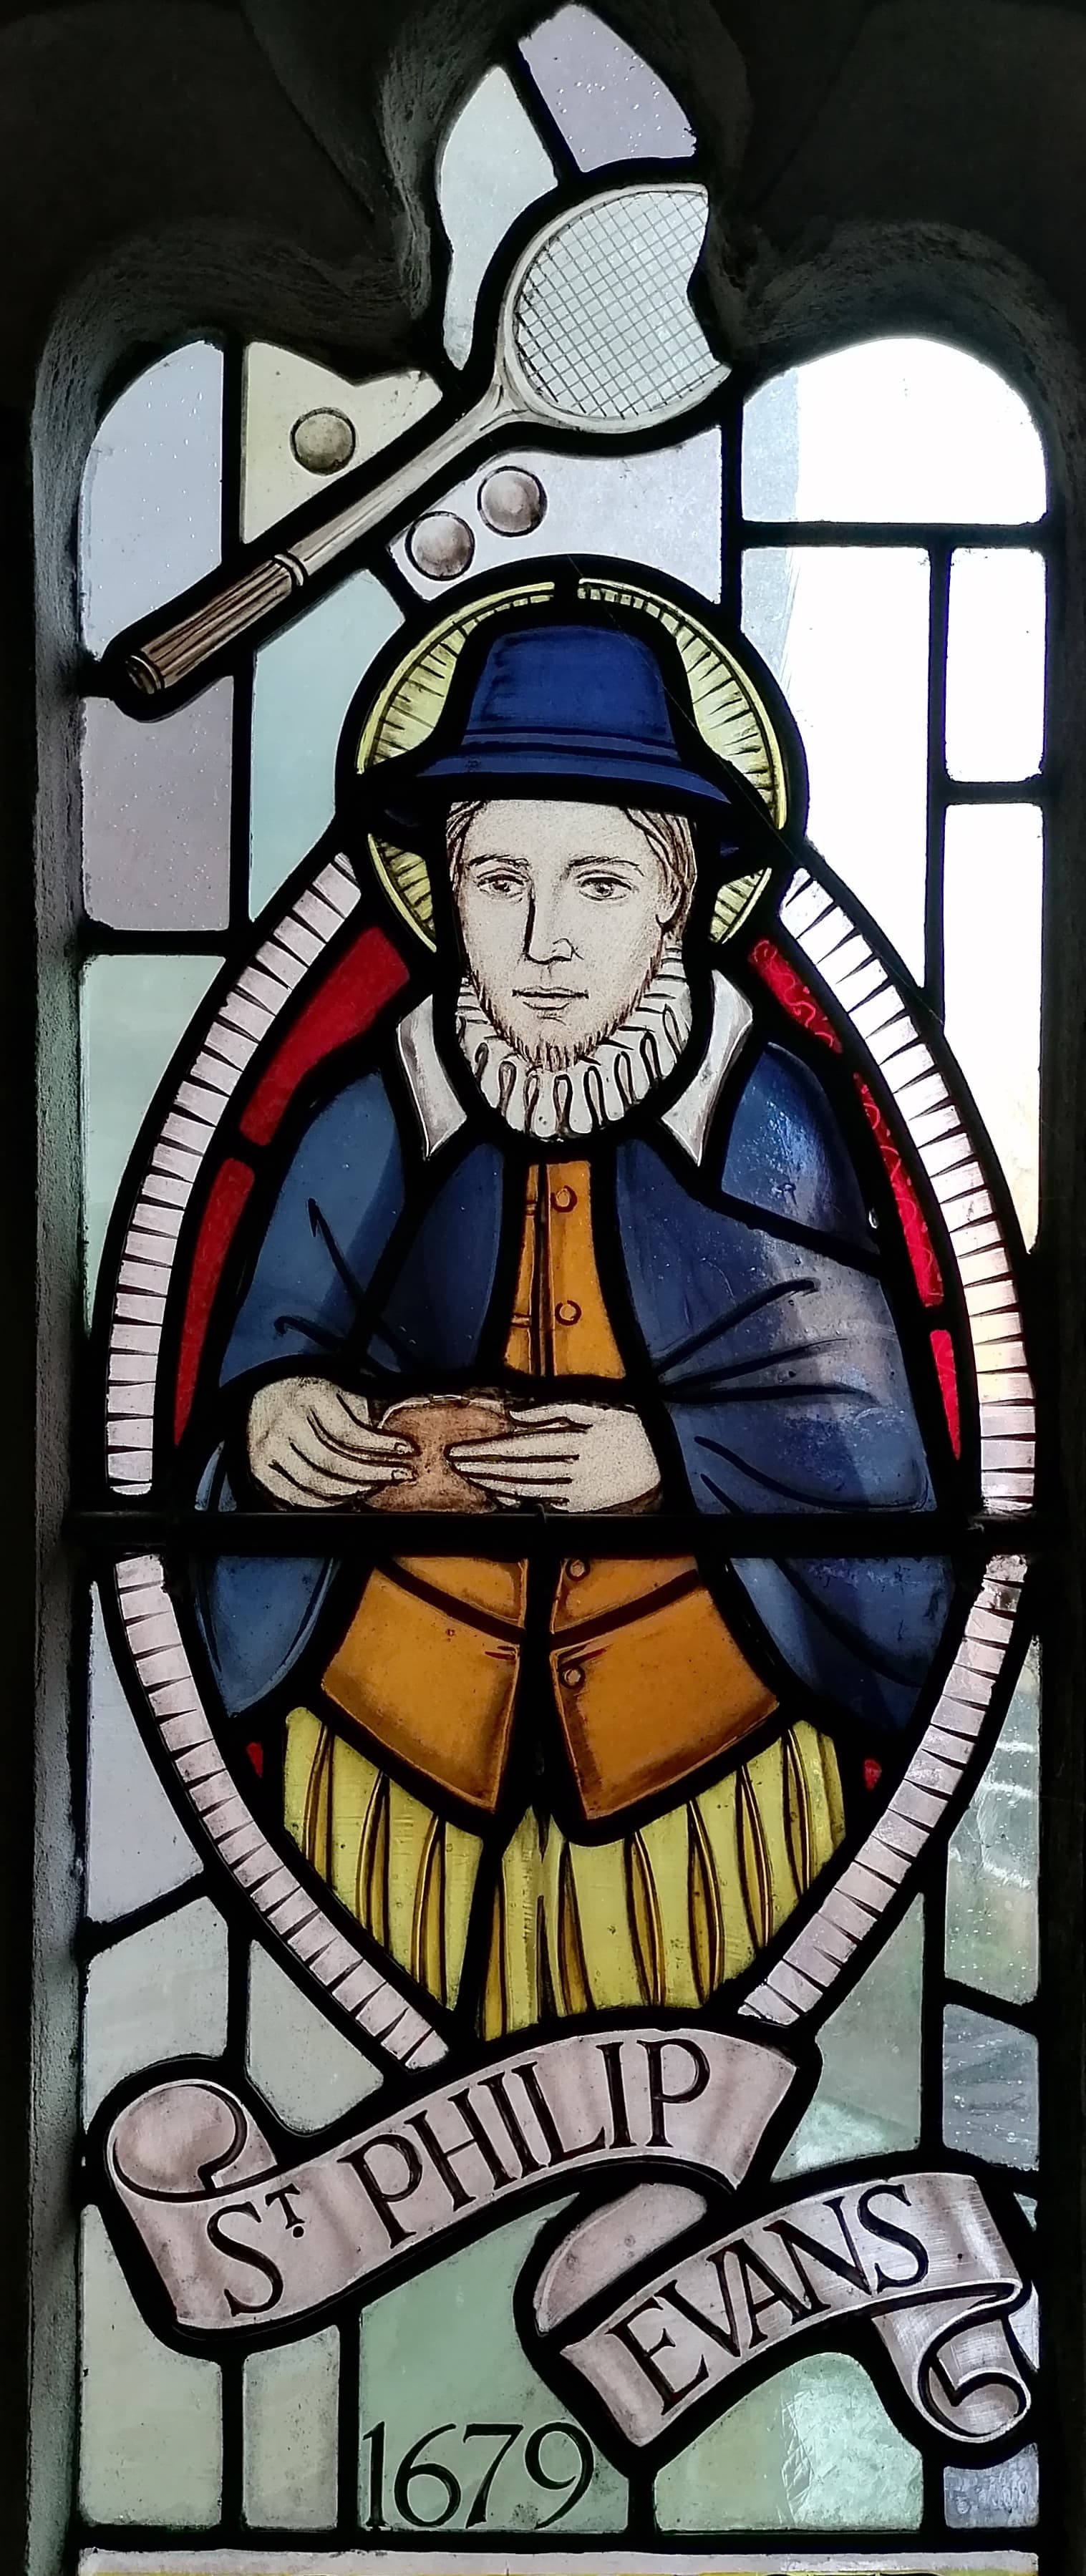 A portrait of a man in stained glass. He is wearing brown garments, a rough, a blue outer garment and a blue hat. Above his head is a tennis racket and three tennis balls. Underneath the figure is written St Philip Evans 16 79